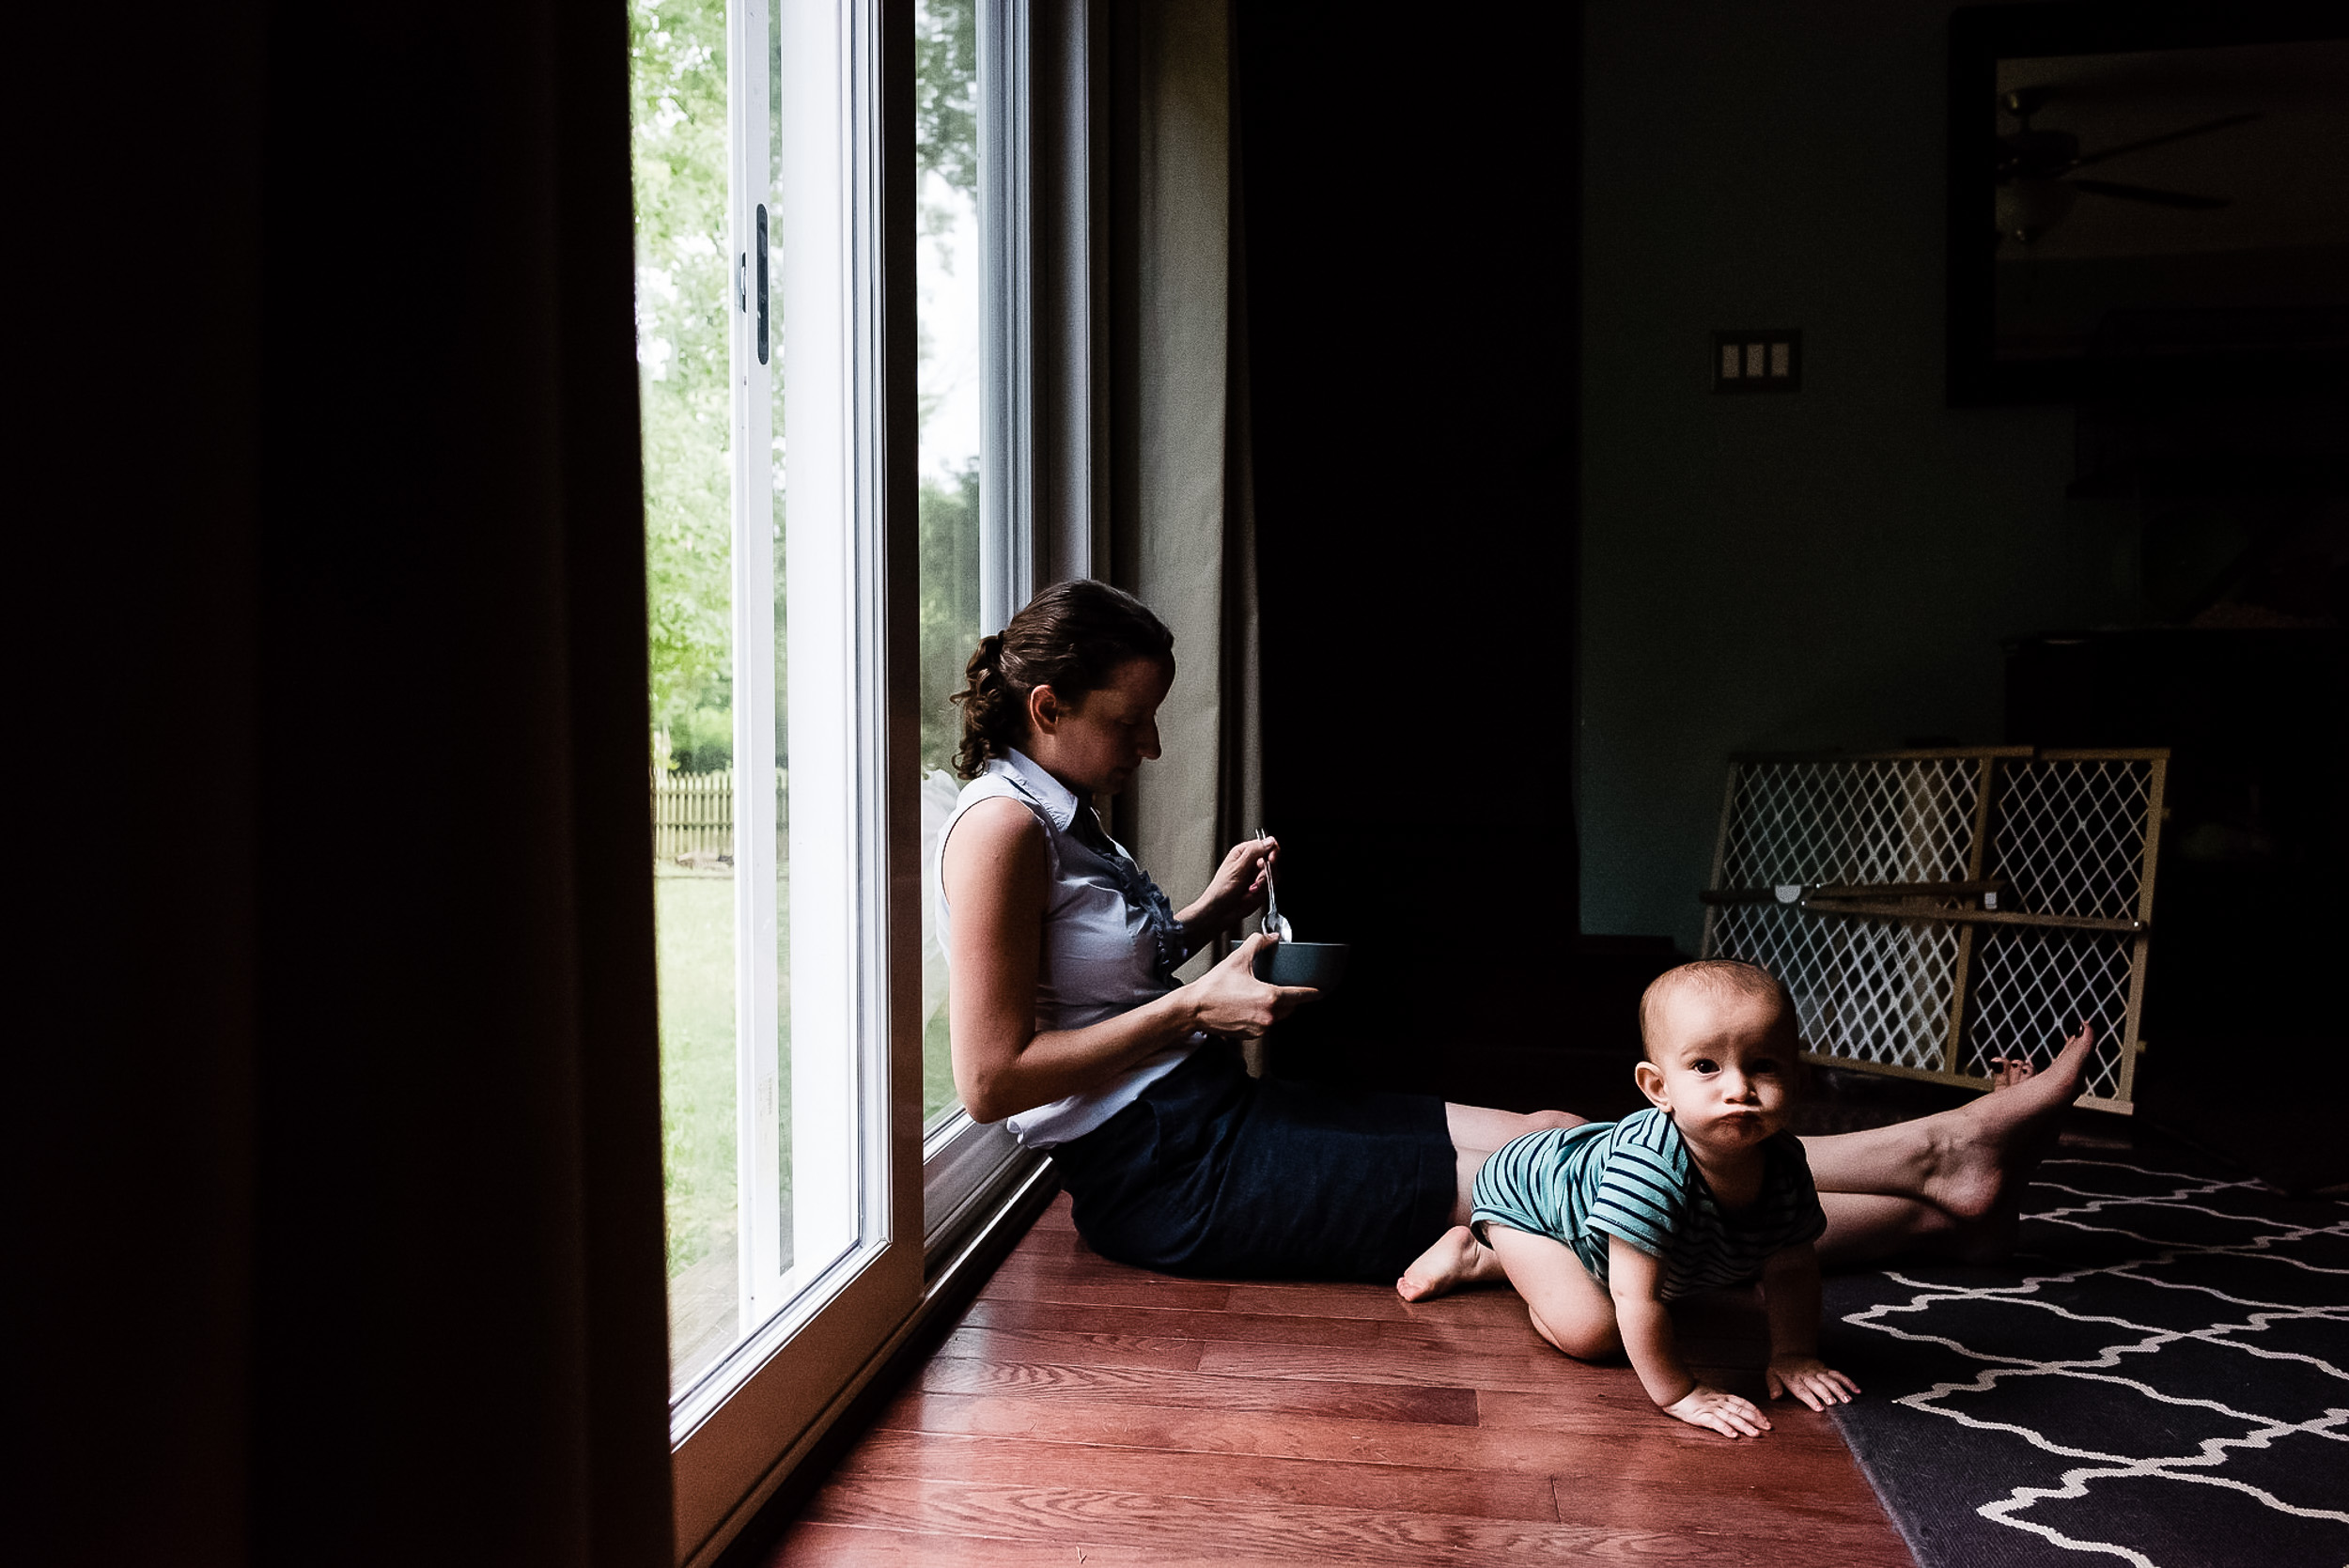 August-Summer-Documentary-Favorites-by-Northern-Virginia-Family-Photographer-Nicole-Sanchez-6.jpg